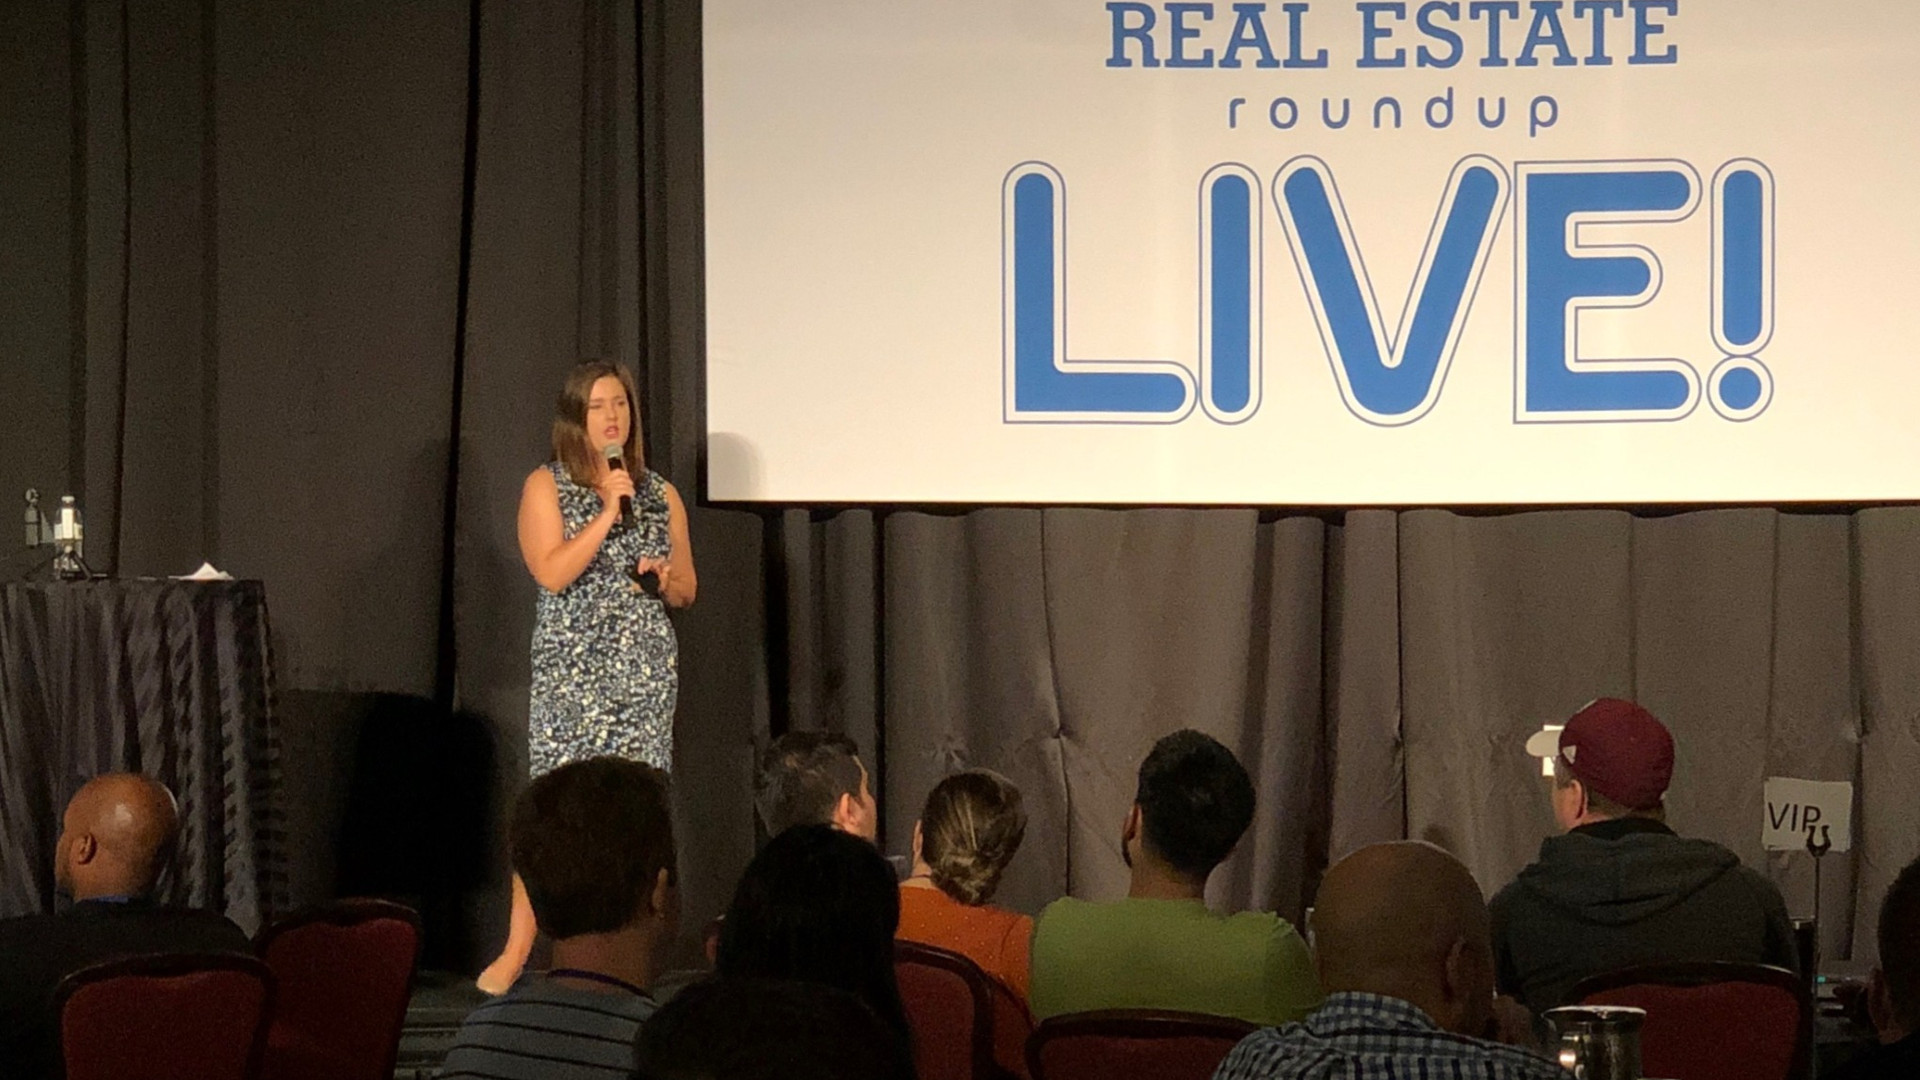 Our Founder Kelsey Steffens speaking at the Real Estate Roundup Event